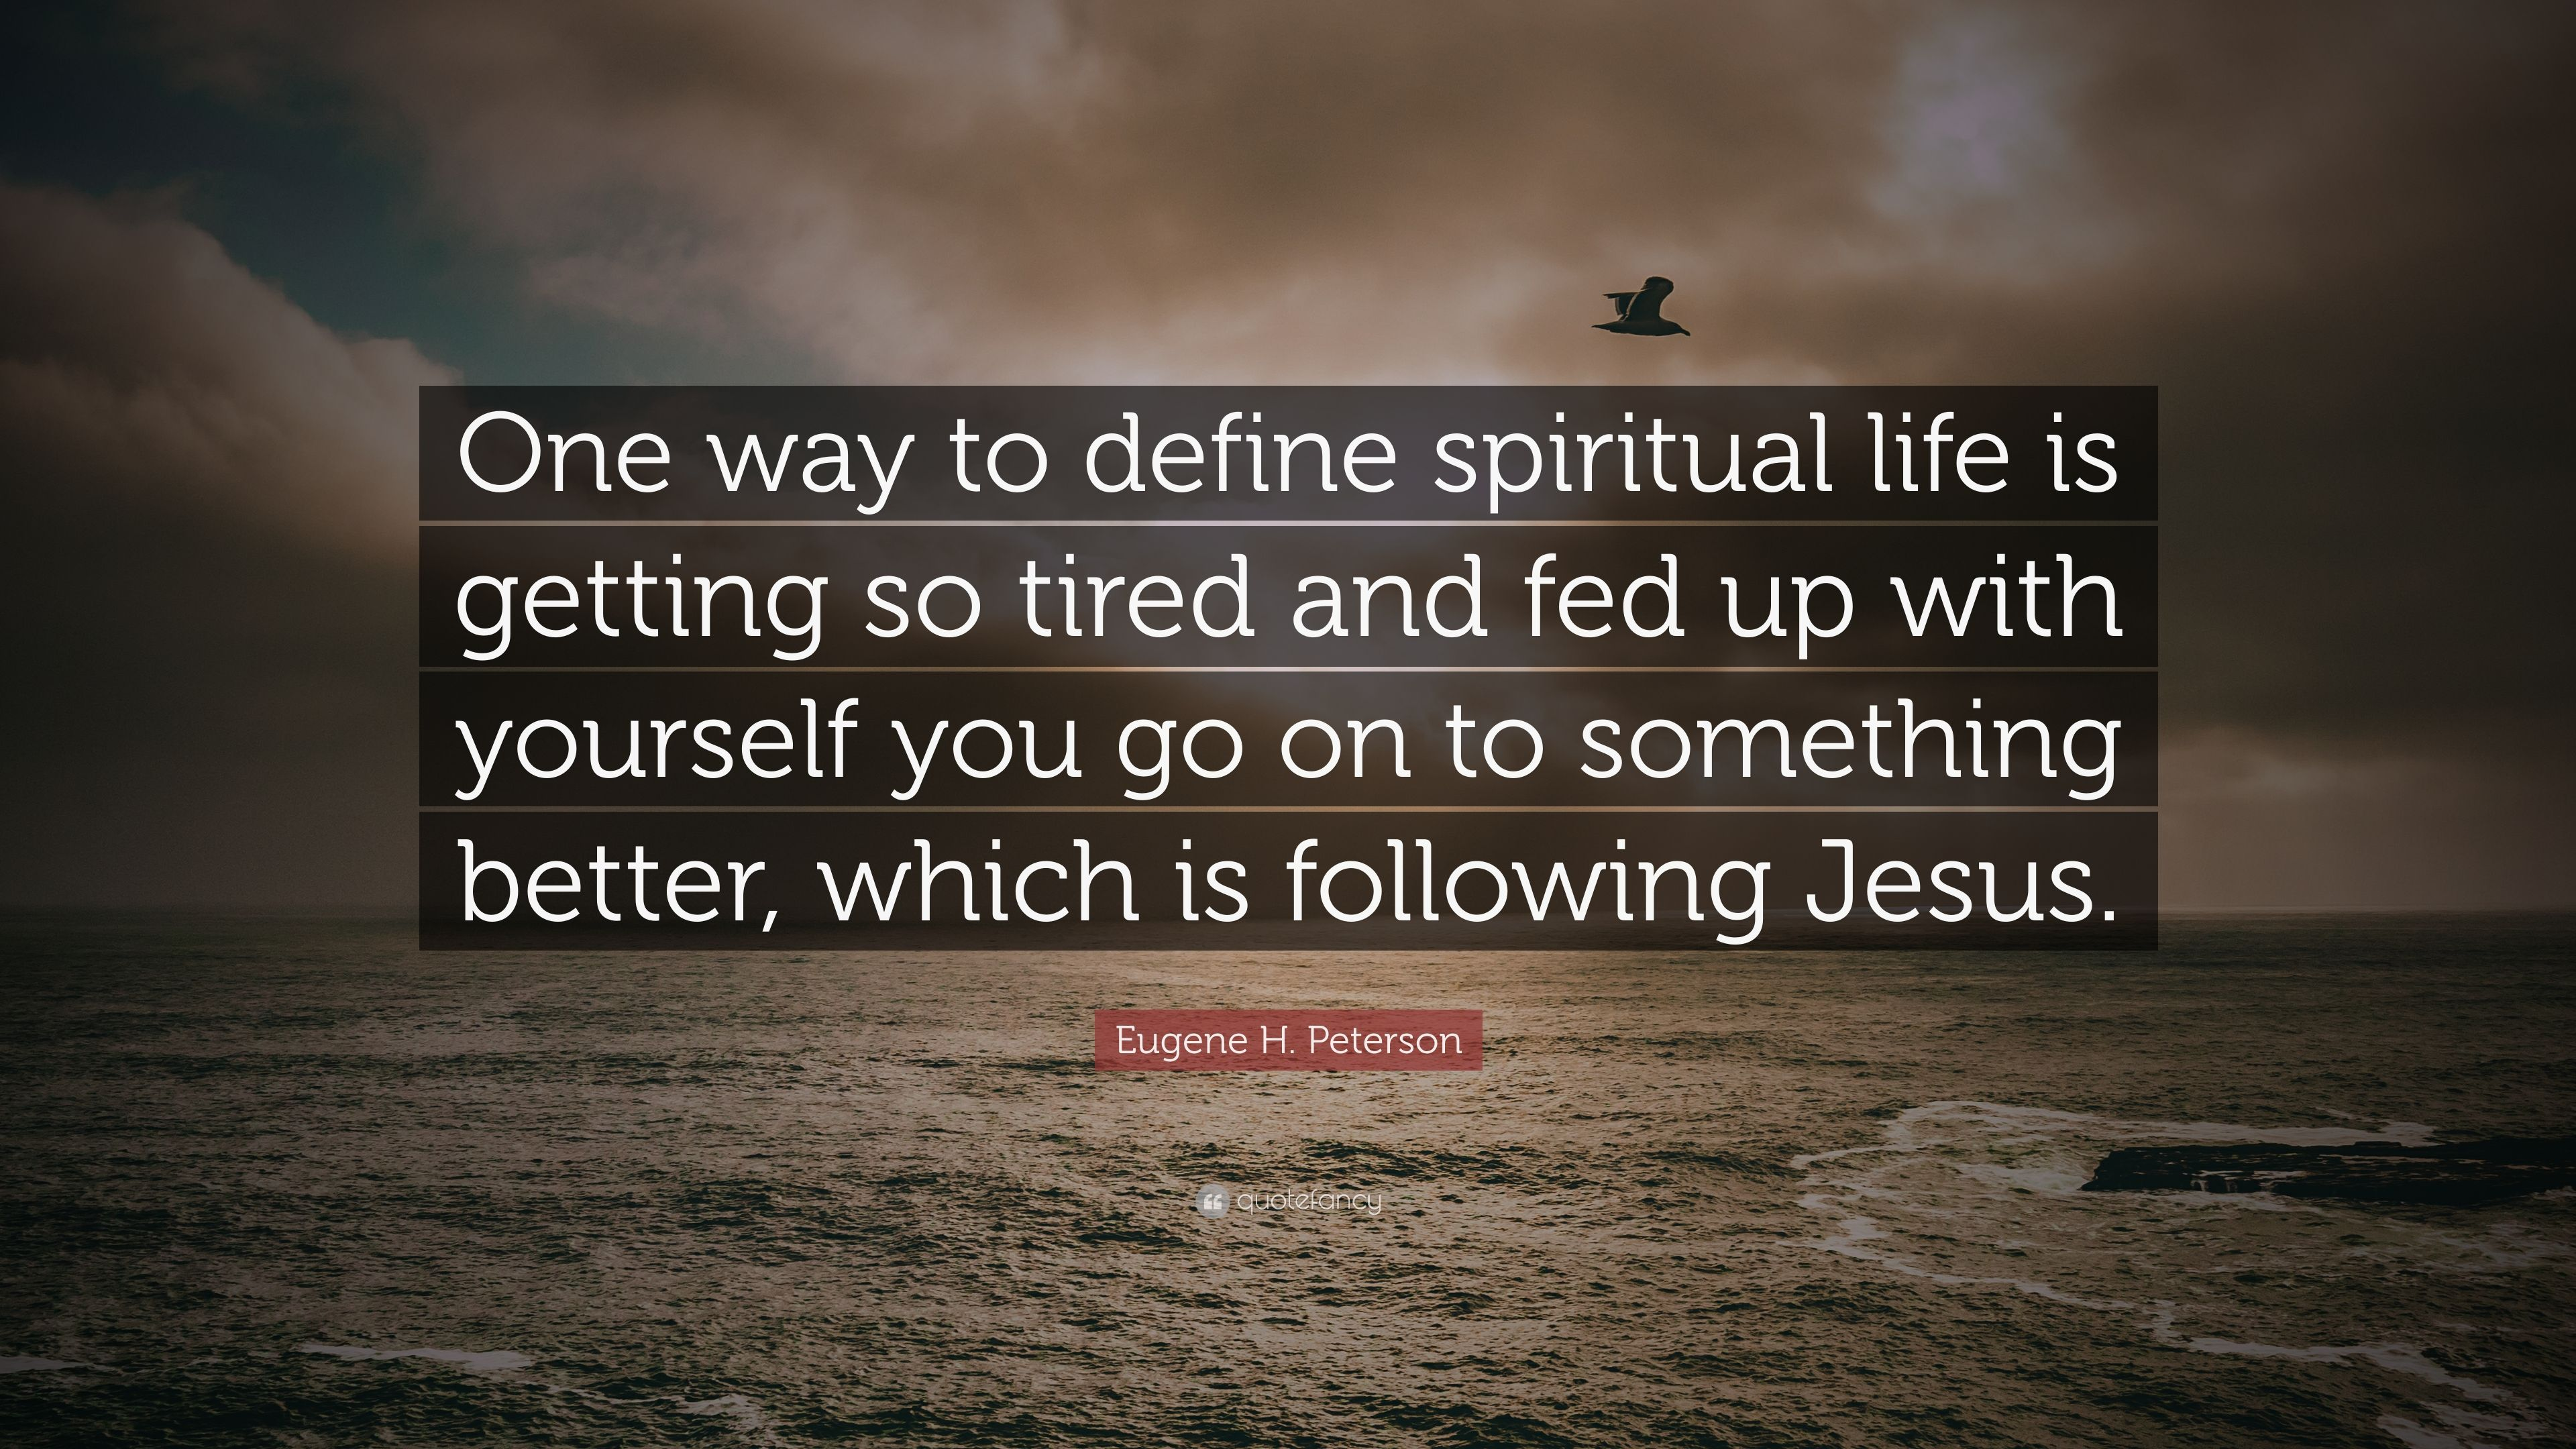 Eugene H Peterson Quote One Way To Define Spiritual Life Is